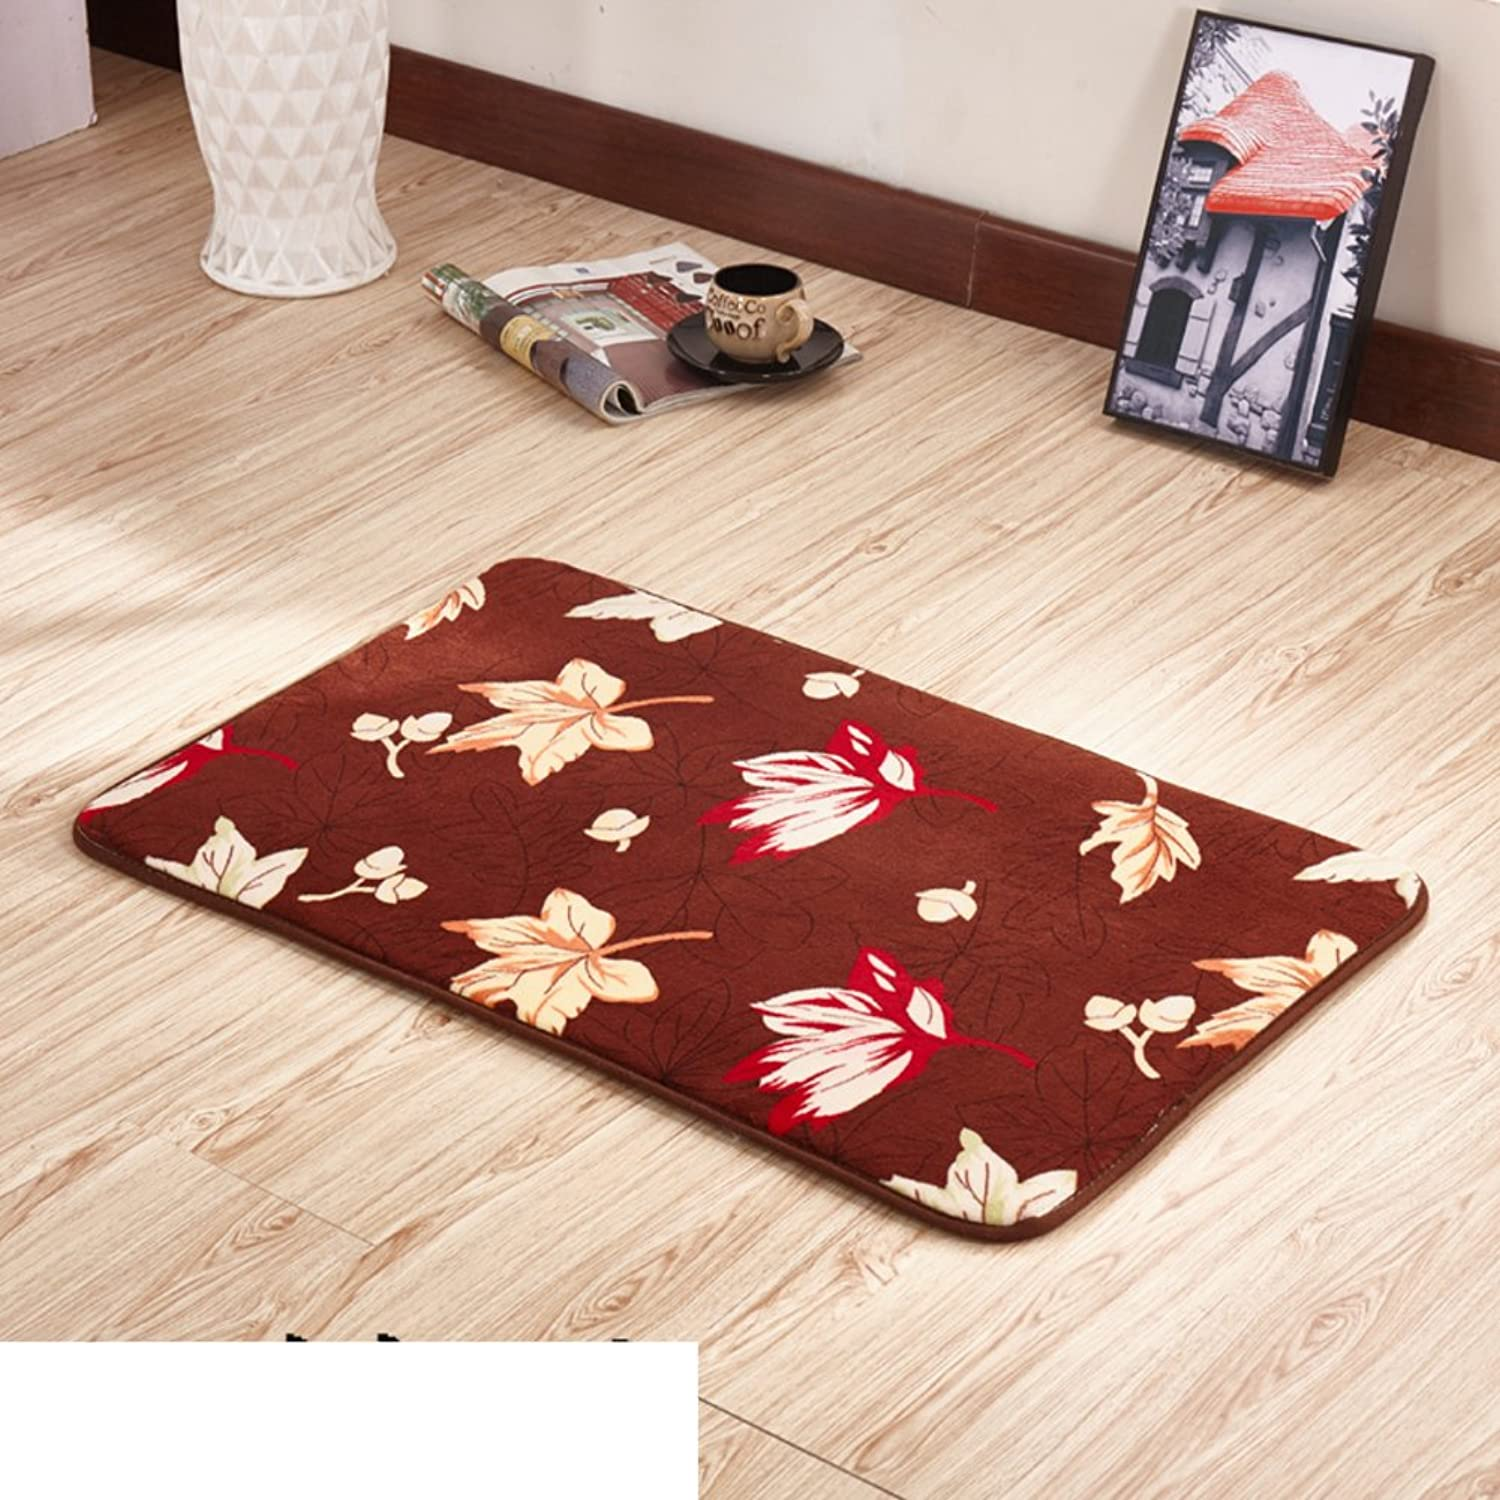 Thickened Household Door mats Bedroom Indoor mats Bathroom pratunam pad Kitchen Floor mats-D 100x200cm(39x79inch)